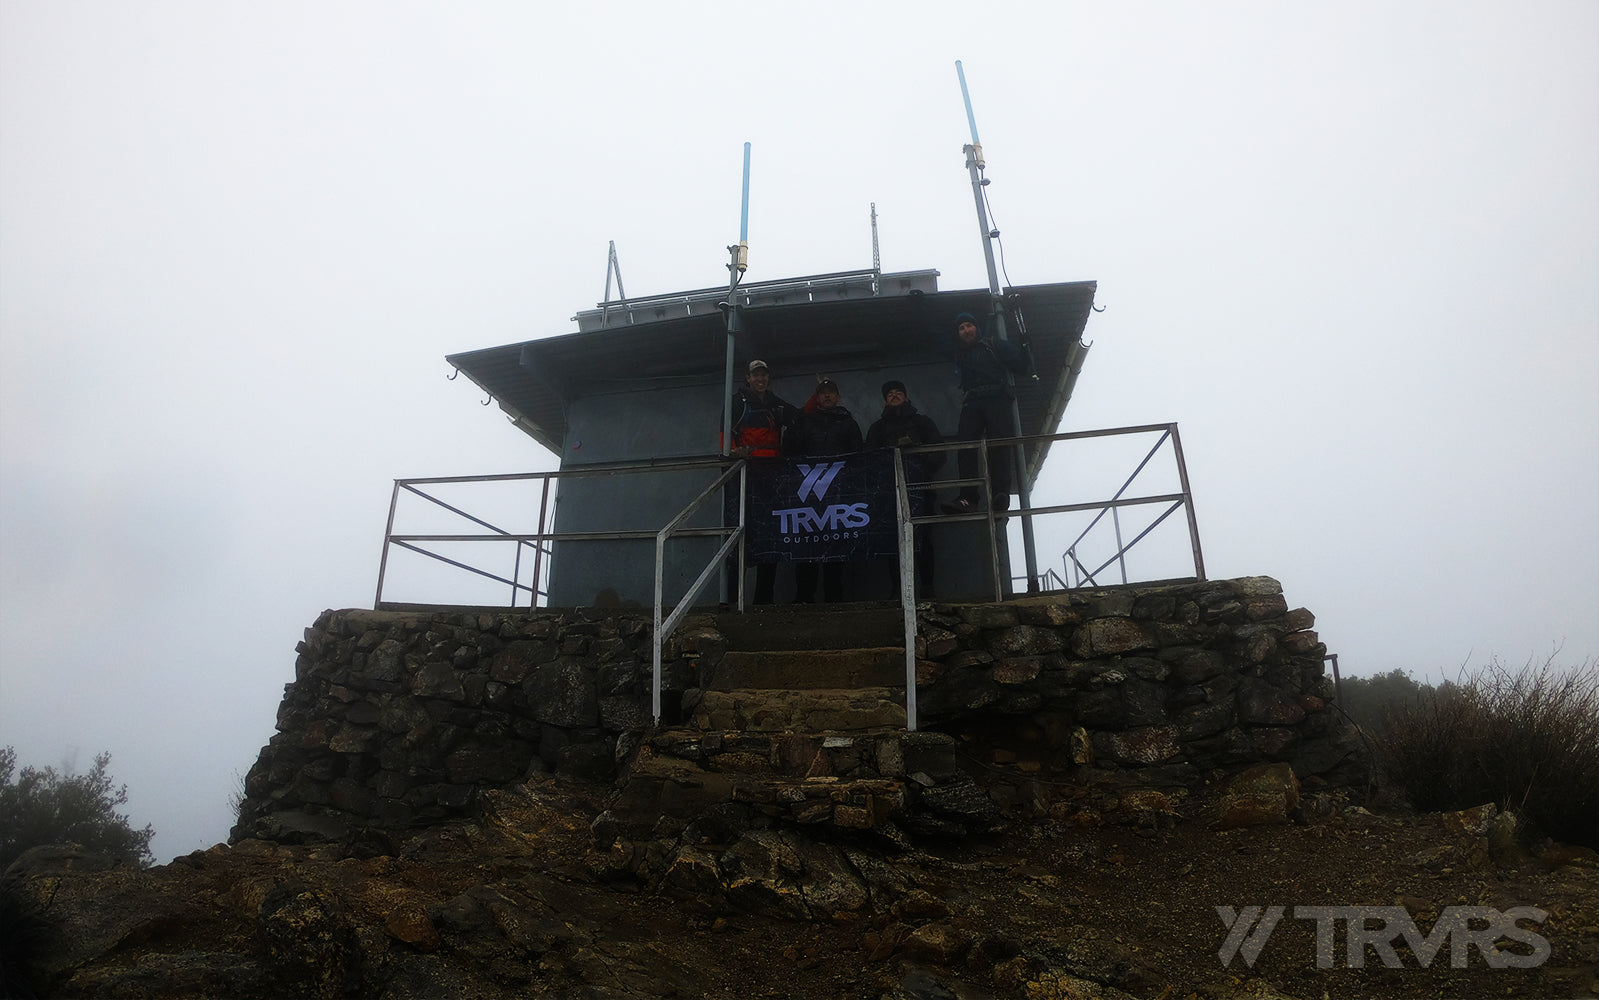 Fire Lookout, Top of Cone Peak -Sea To Sky | TRVRS Outdoors Big Sur, Central California, Pacific Coast, Los Padres National Forest, Santa Lucia Mountains, Hiking, Trail Running, Mountaineering